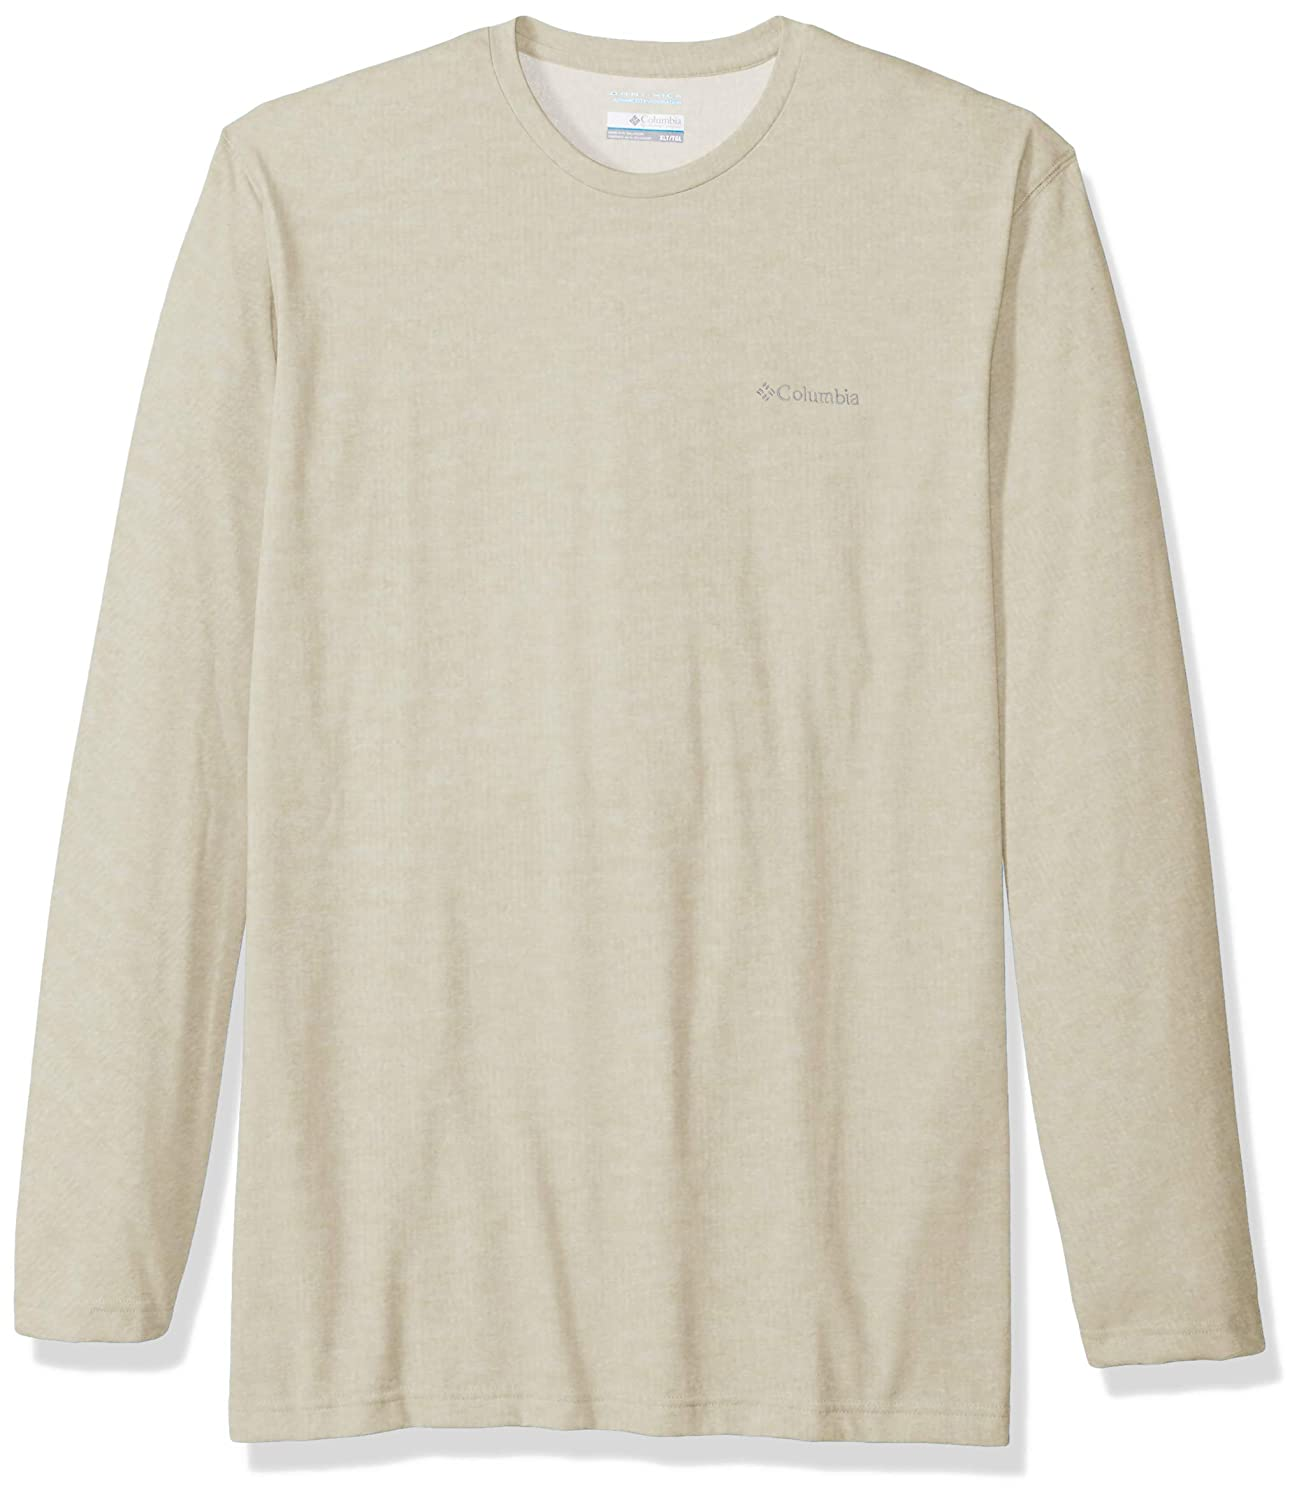 Columbia Mens Big and Tall Thistletown Park Big /& Tall Long Sleeve Crew